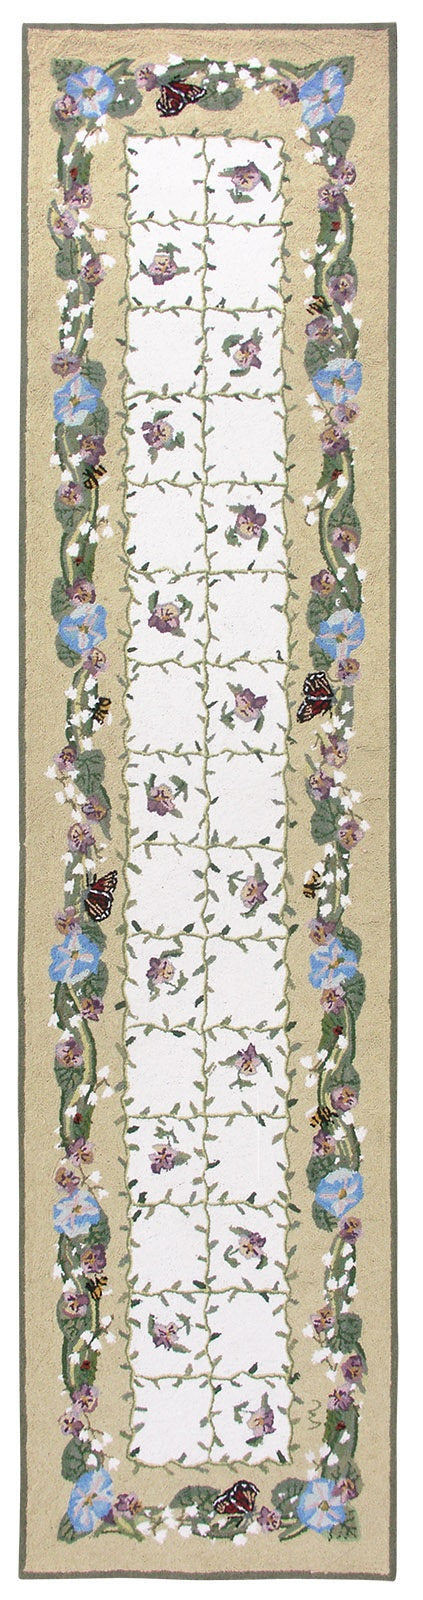 Lily of the Valley 10' Runner R1051-C